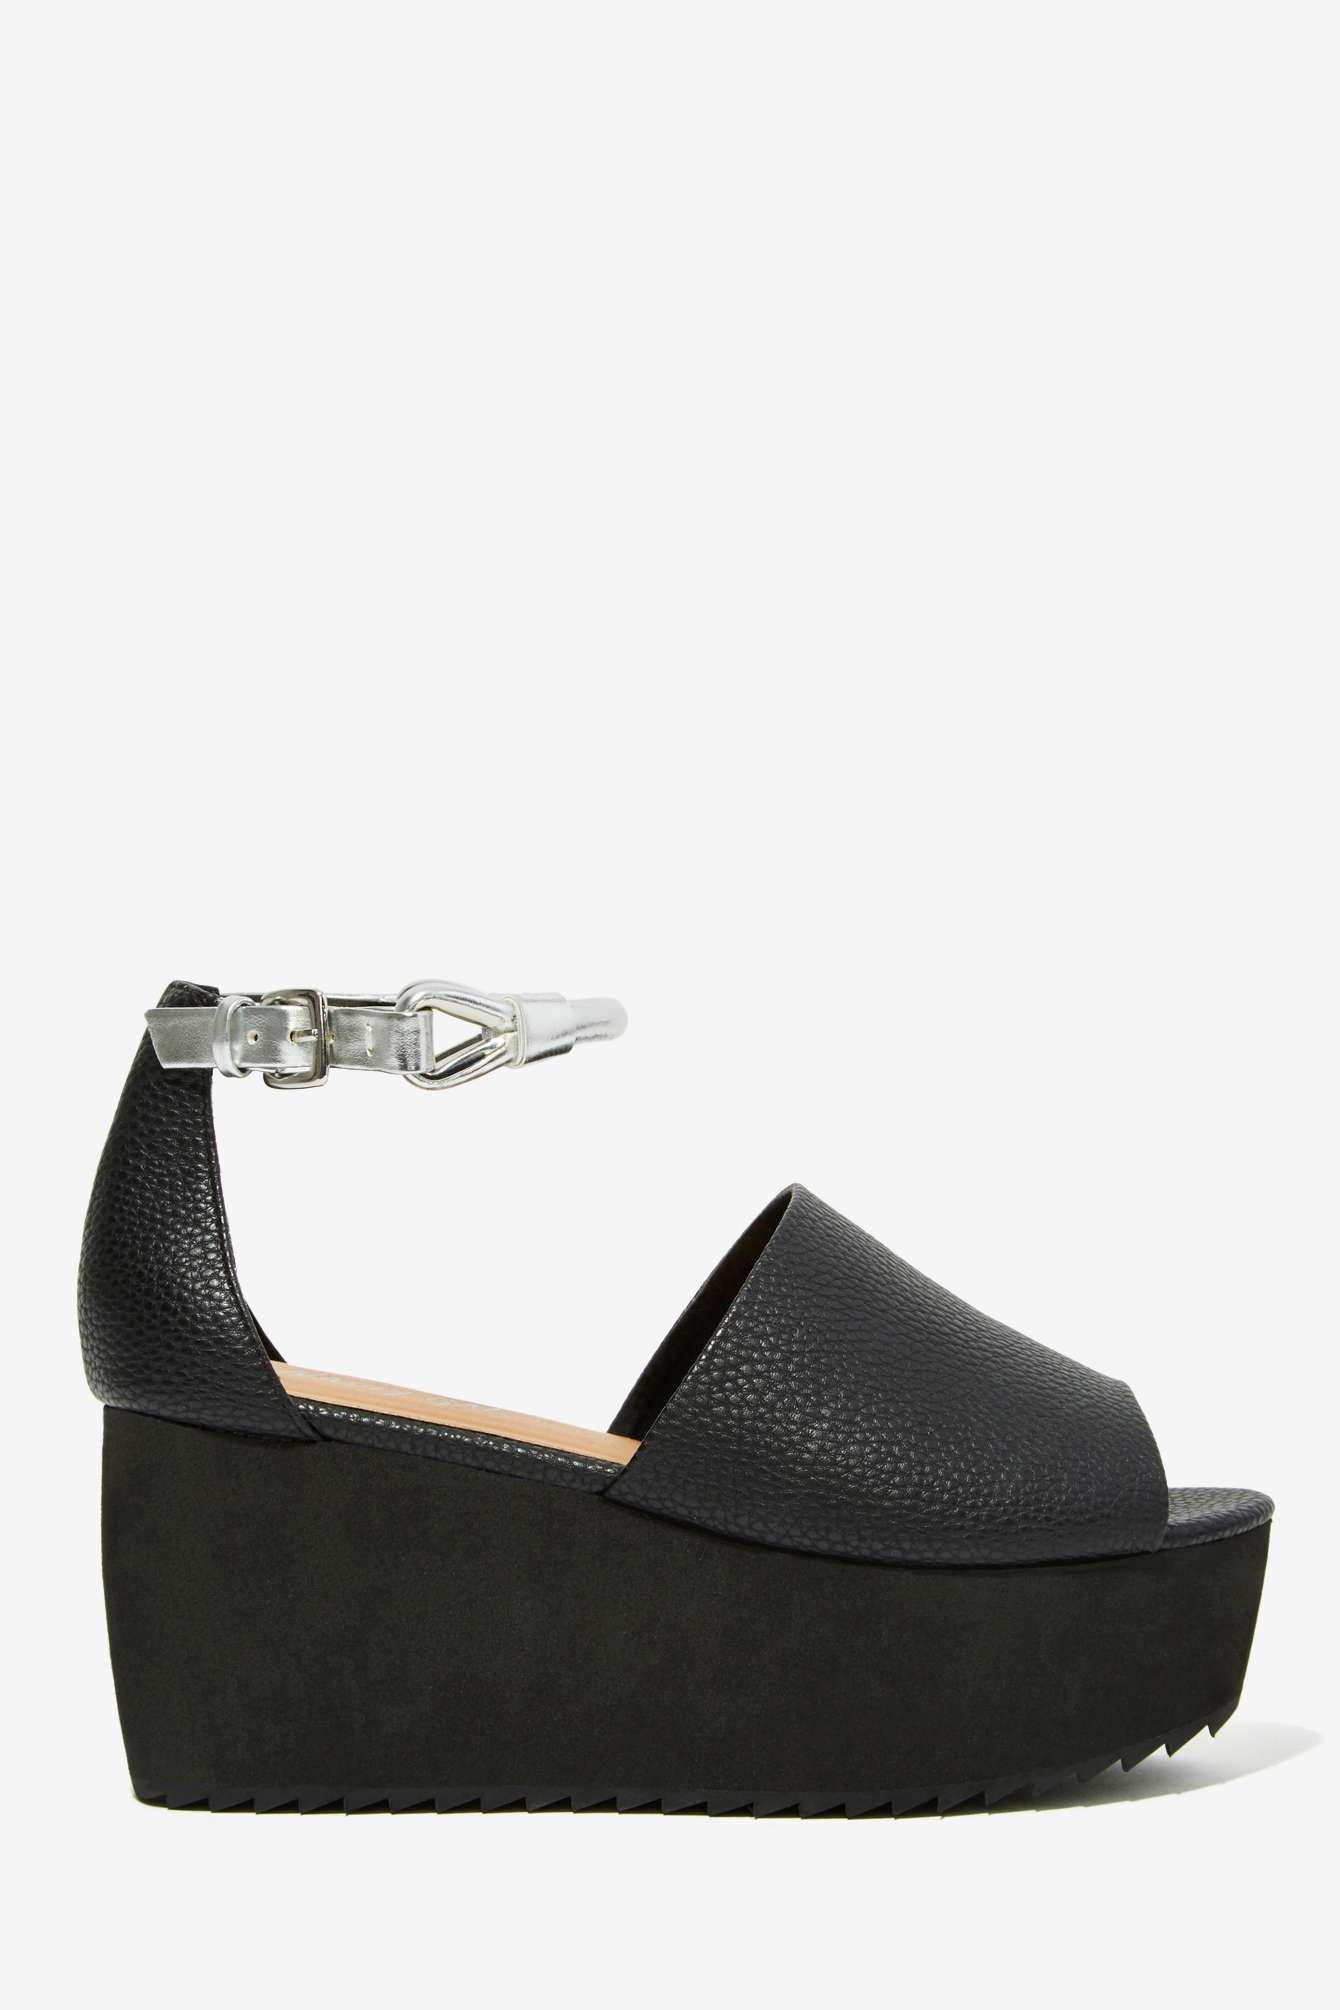 ce62d401096 Nasty Gal Space Truckin  Vegan Leather Flatform Shoes